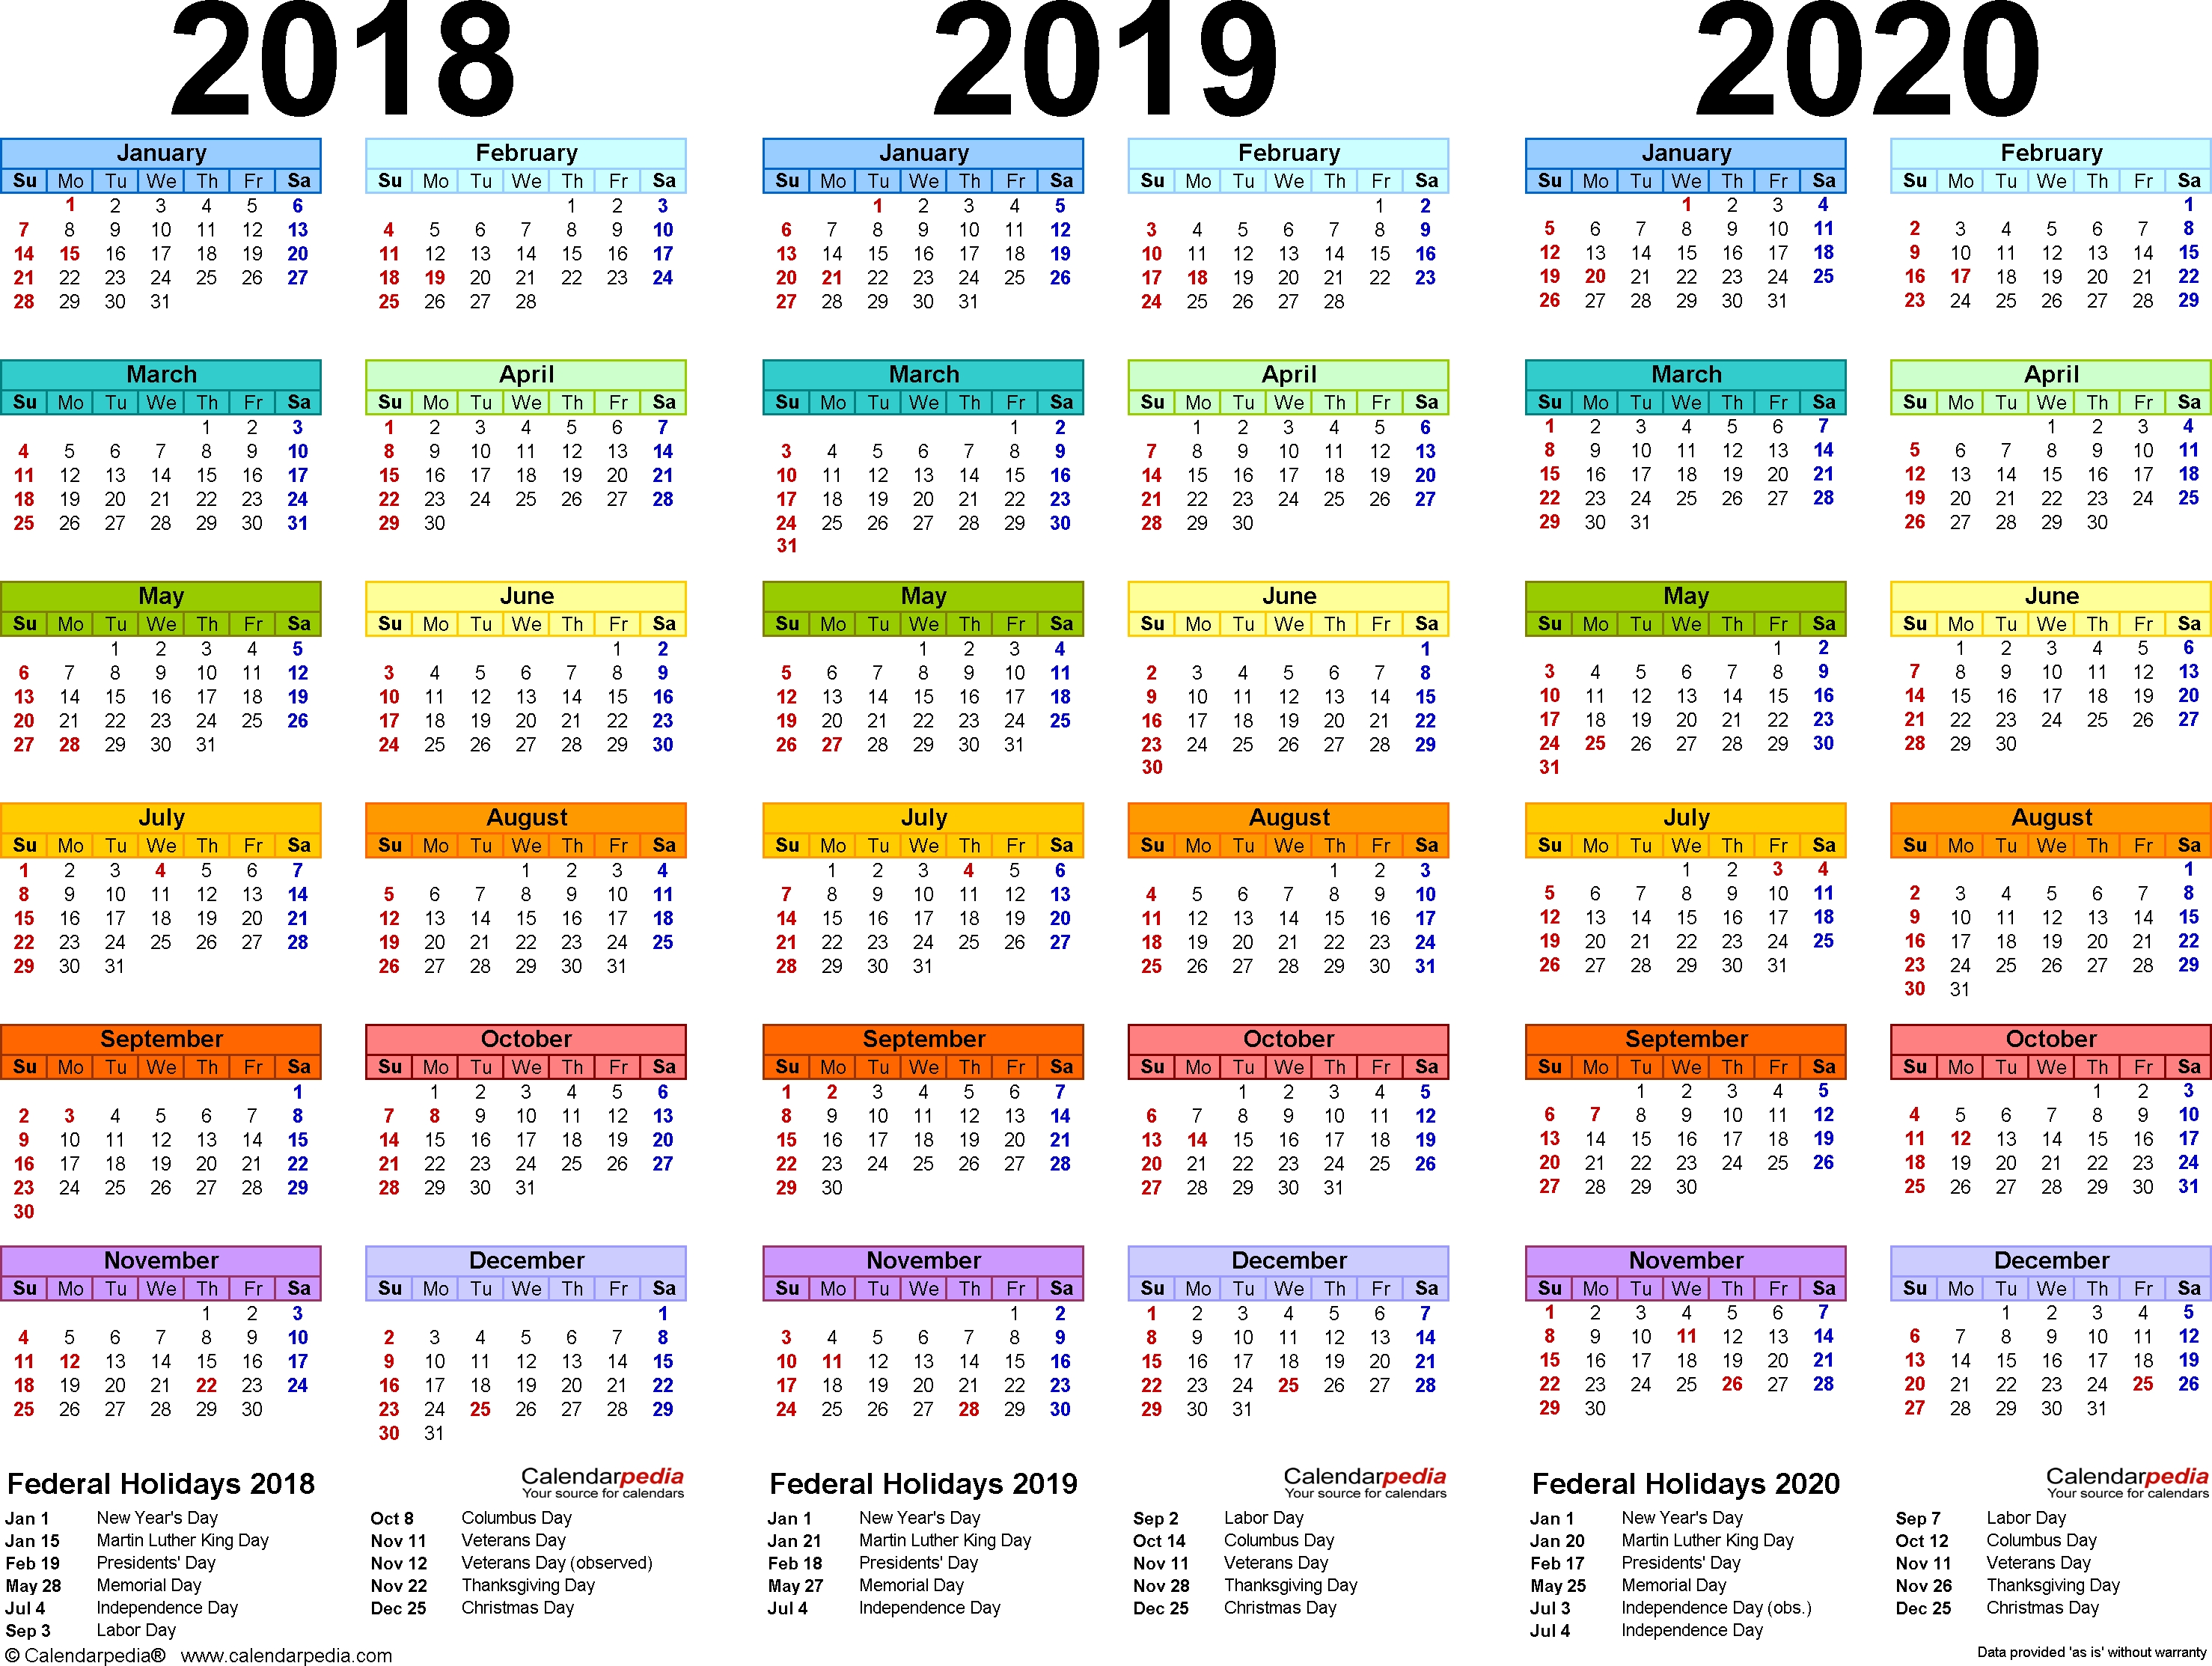 How To Create A Jweish Calender In One Page For 2019-2020